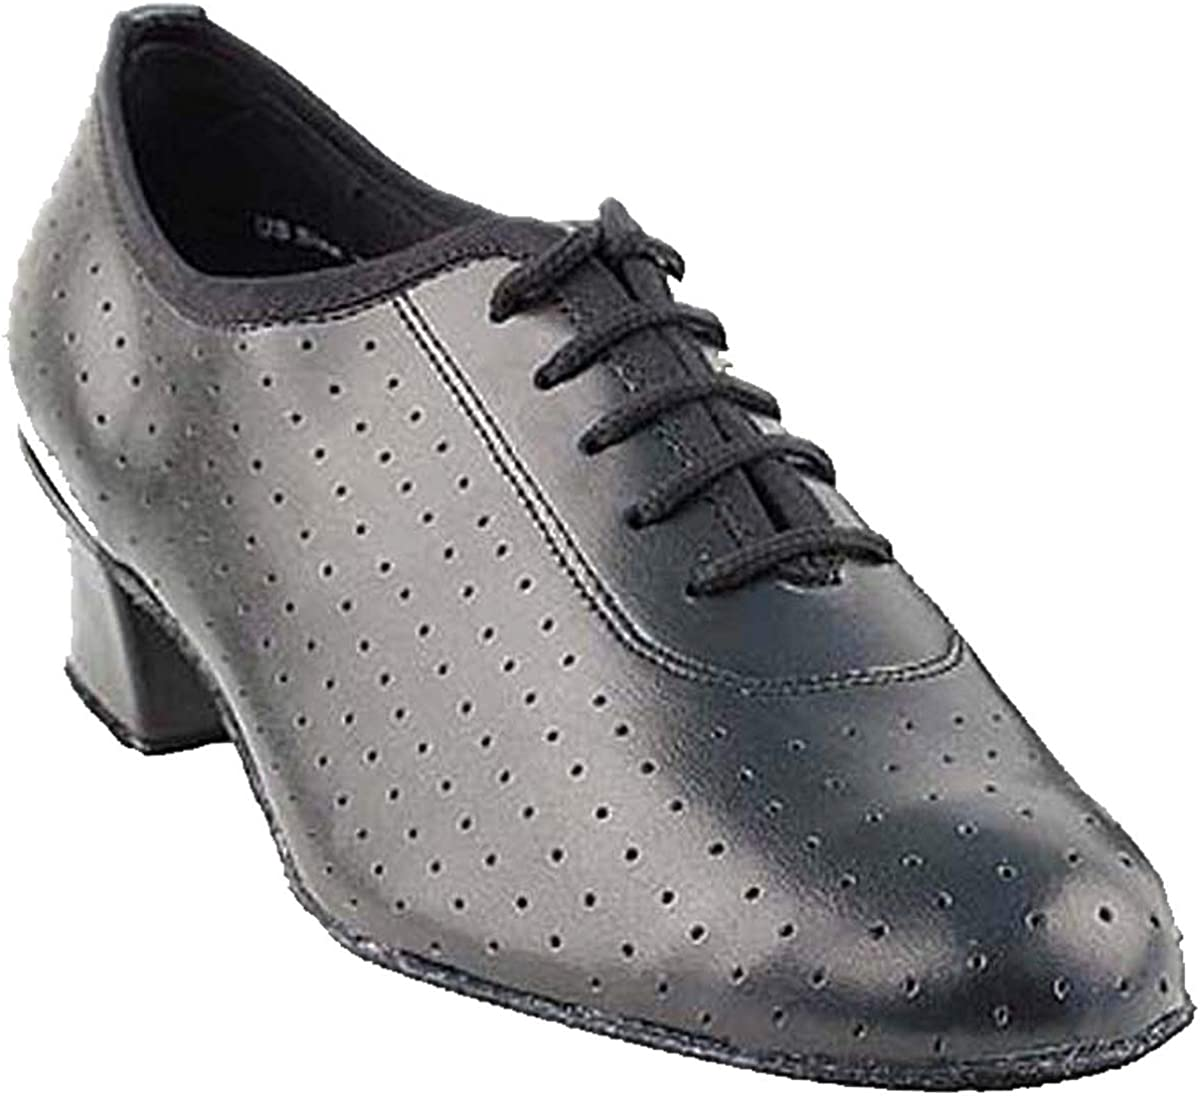 Womens Ballroom Dance Shoes Party Salsa Practice Shoes 2001EB Comfortable -Very Fine 1.5